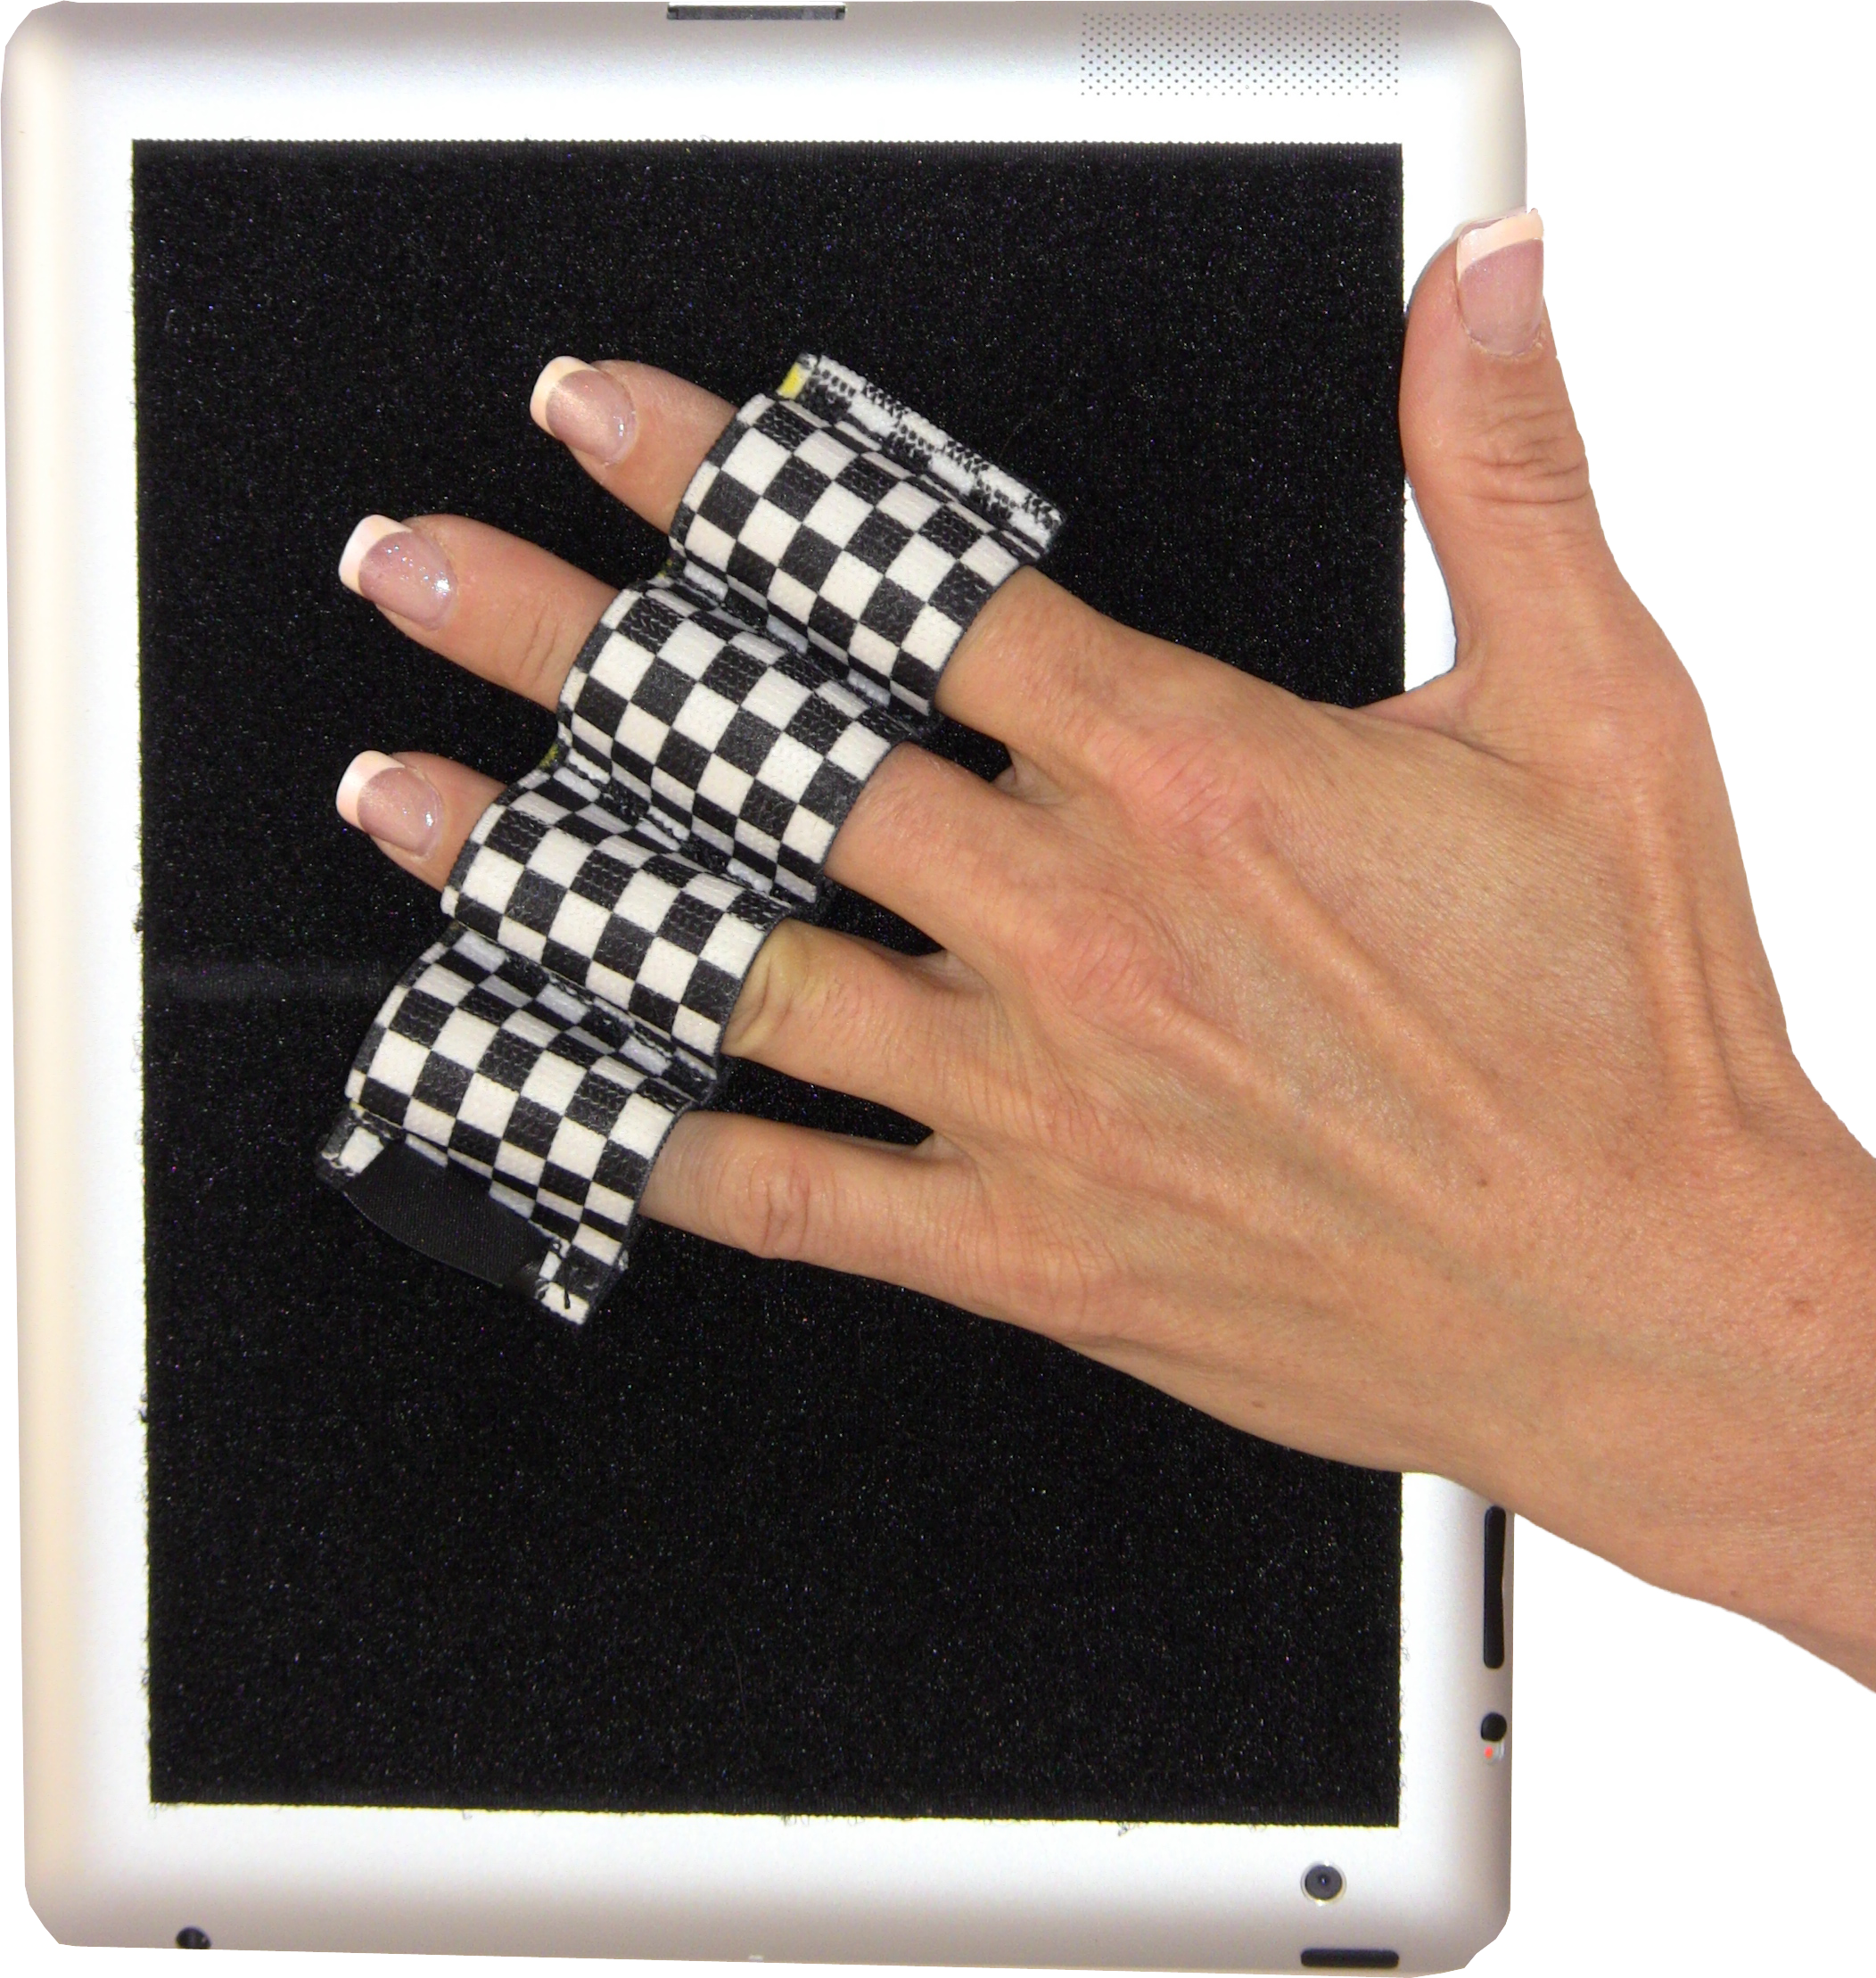 Heavy Duty 4-Loop Grip for iPad or Large Tablet (x1) - Black & White Checkers